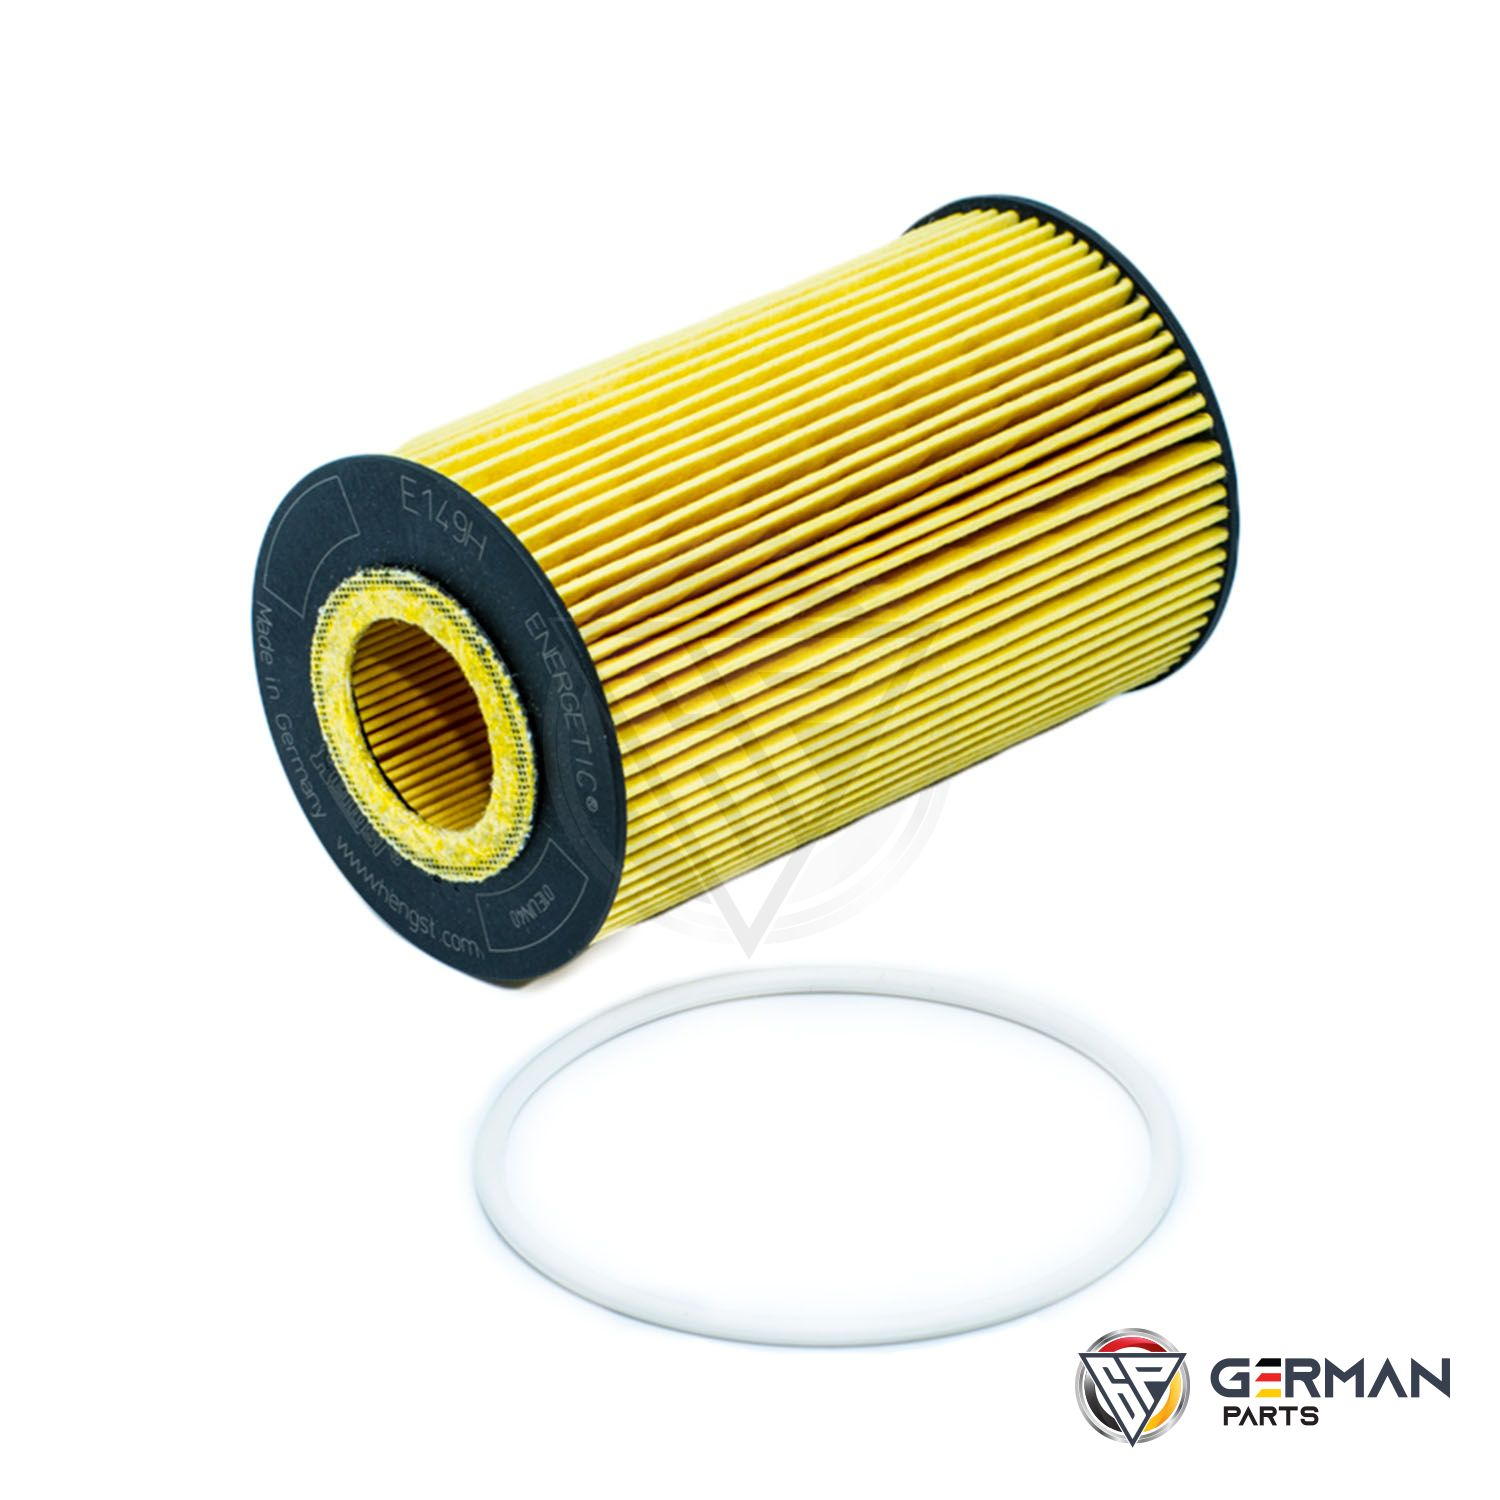 Buy Hengst Oil Filter 0001803009 - German Parts